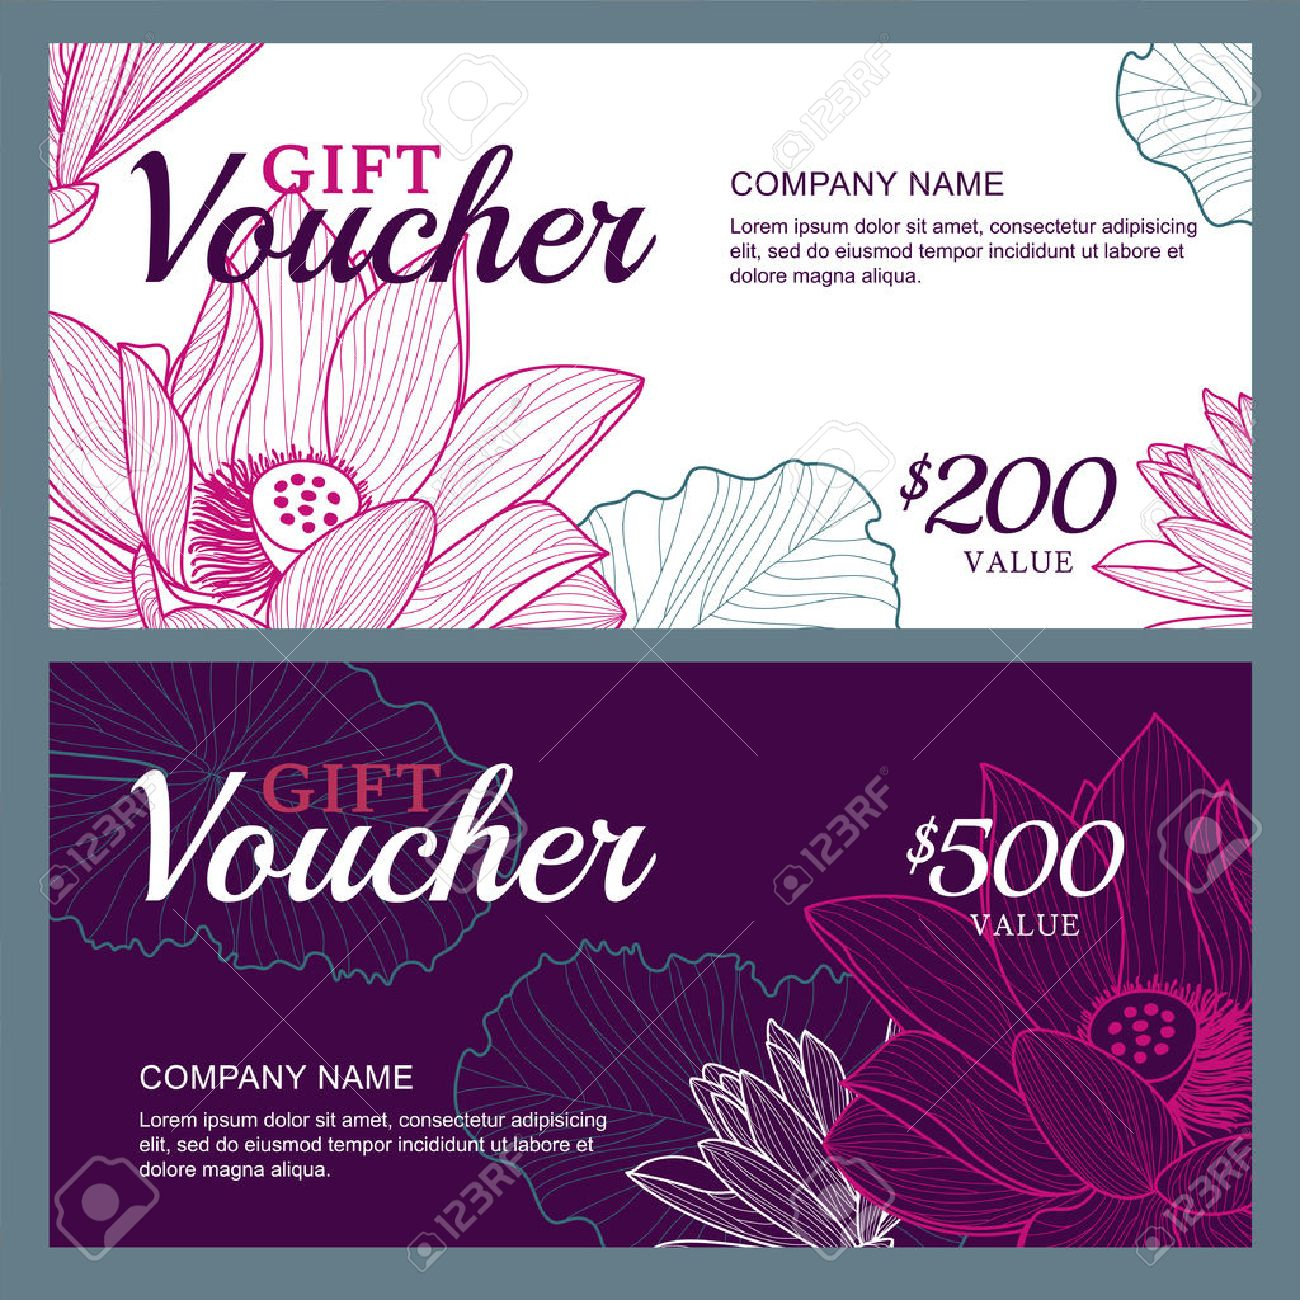 Vector Gift Voucher Template With Lotus, Lily Flowers. Business ...